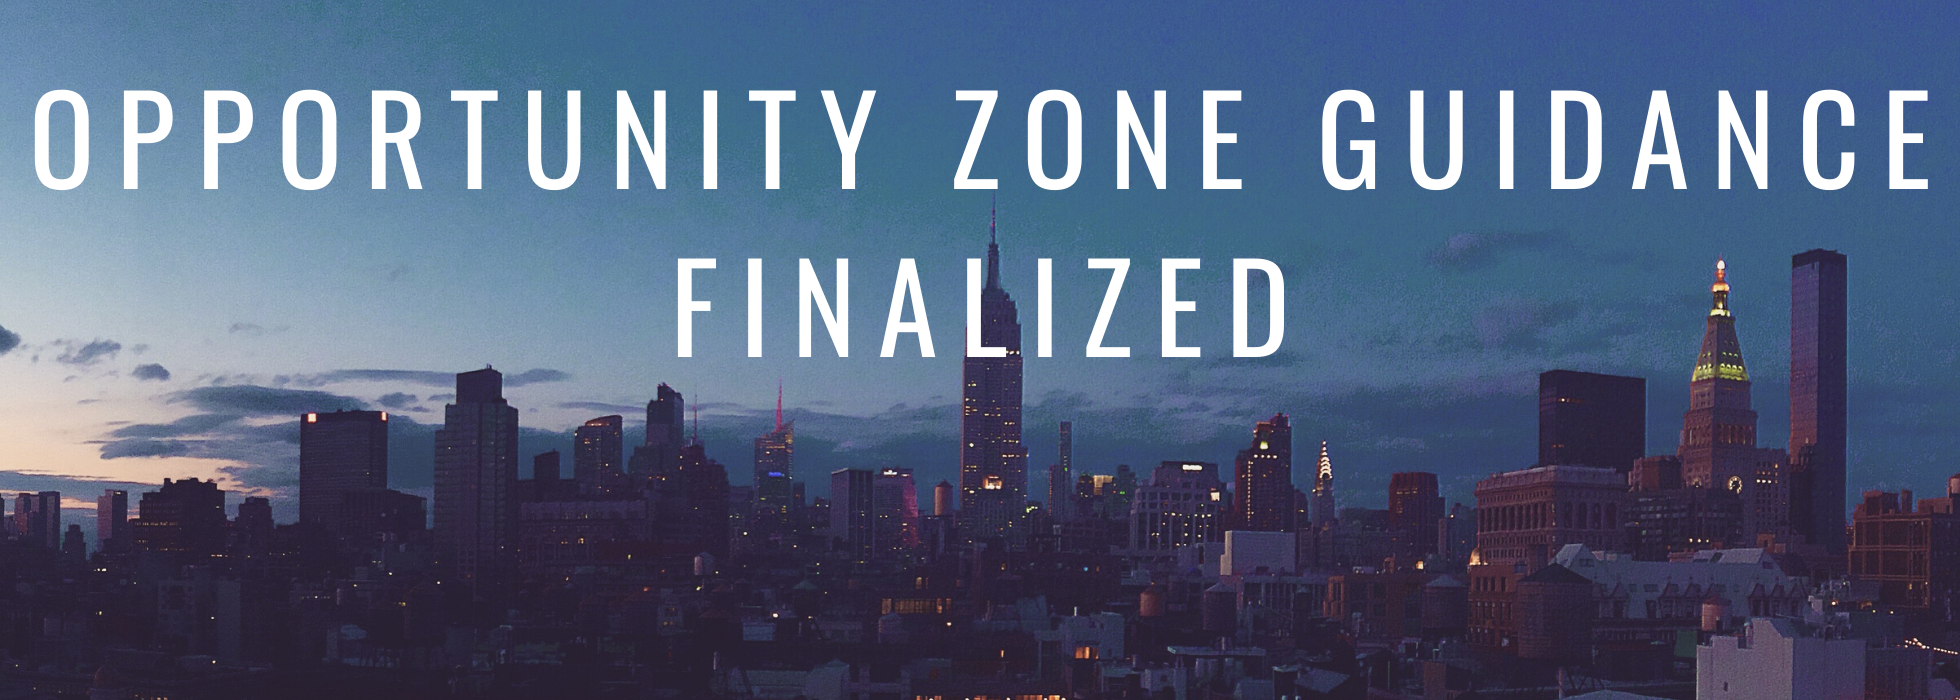 Opportunity zone guidance finalized